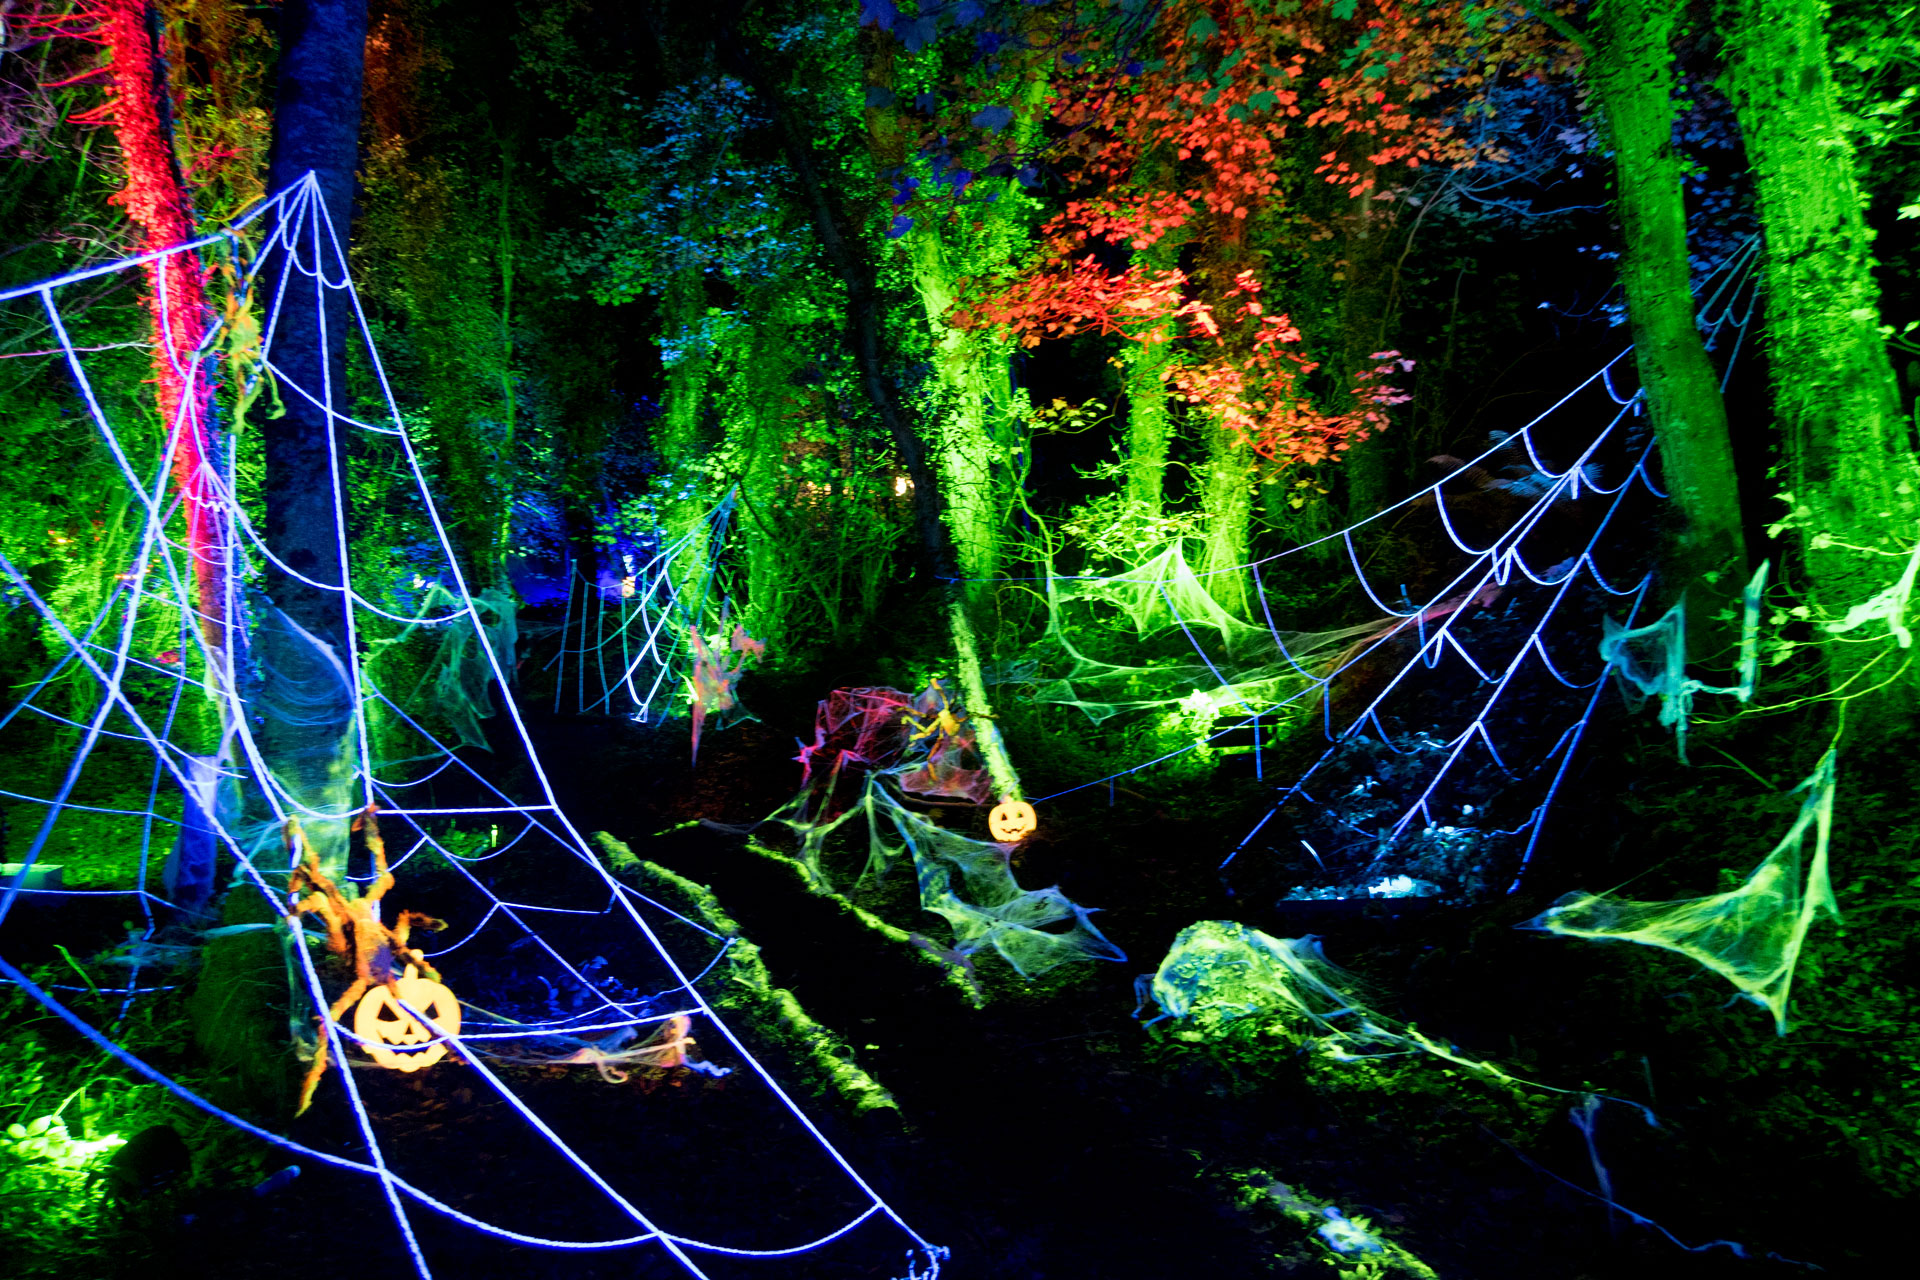 Halloween lighting event in an enchanted forest in North Wales, with giant UV reactive spider webs, glowing spiders and pumpkins. Uplit trees, illuminated in green and blue by waterproof LED lighting